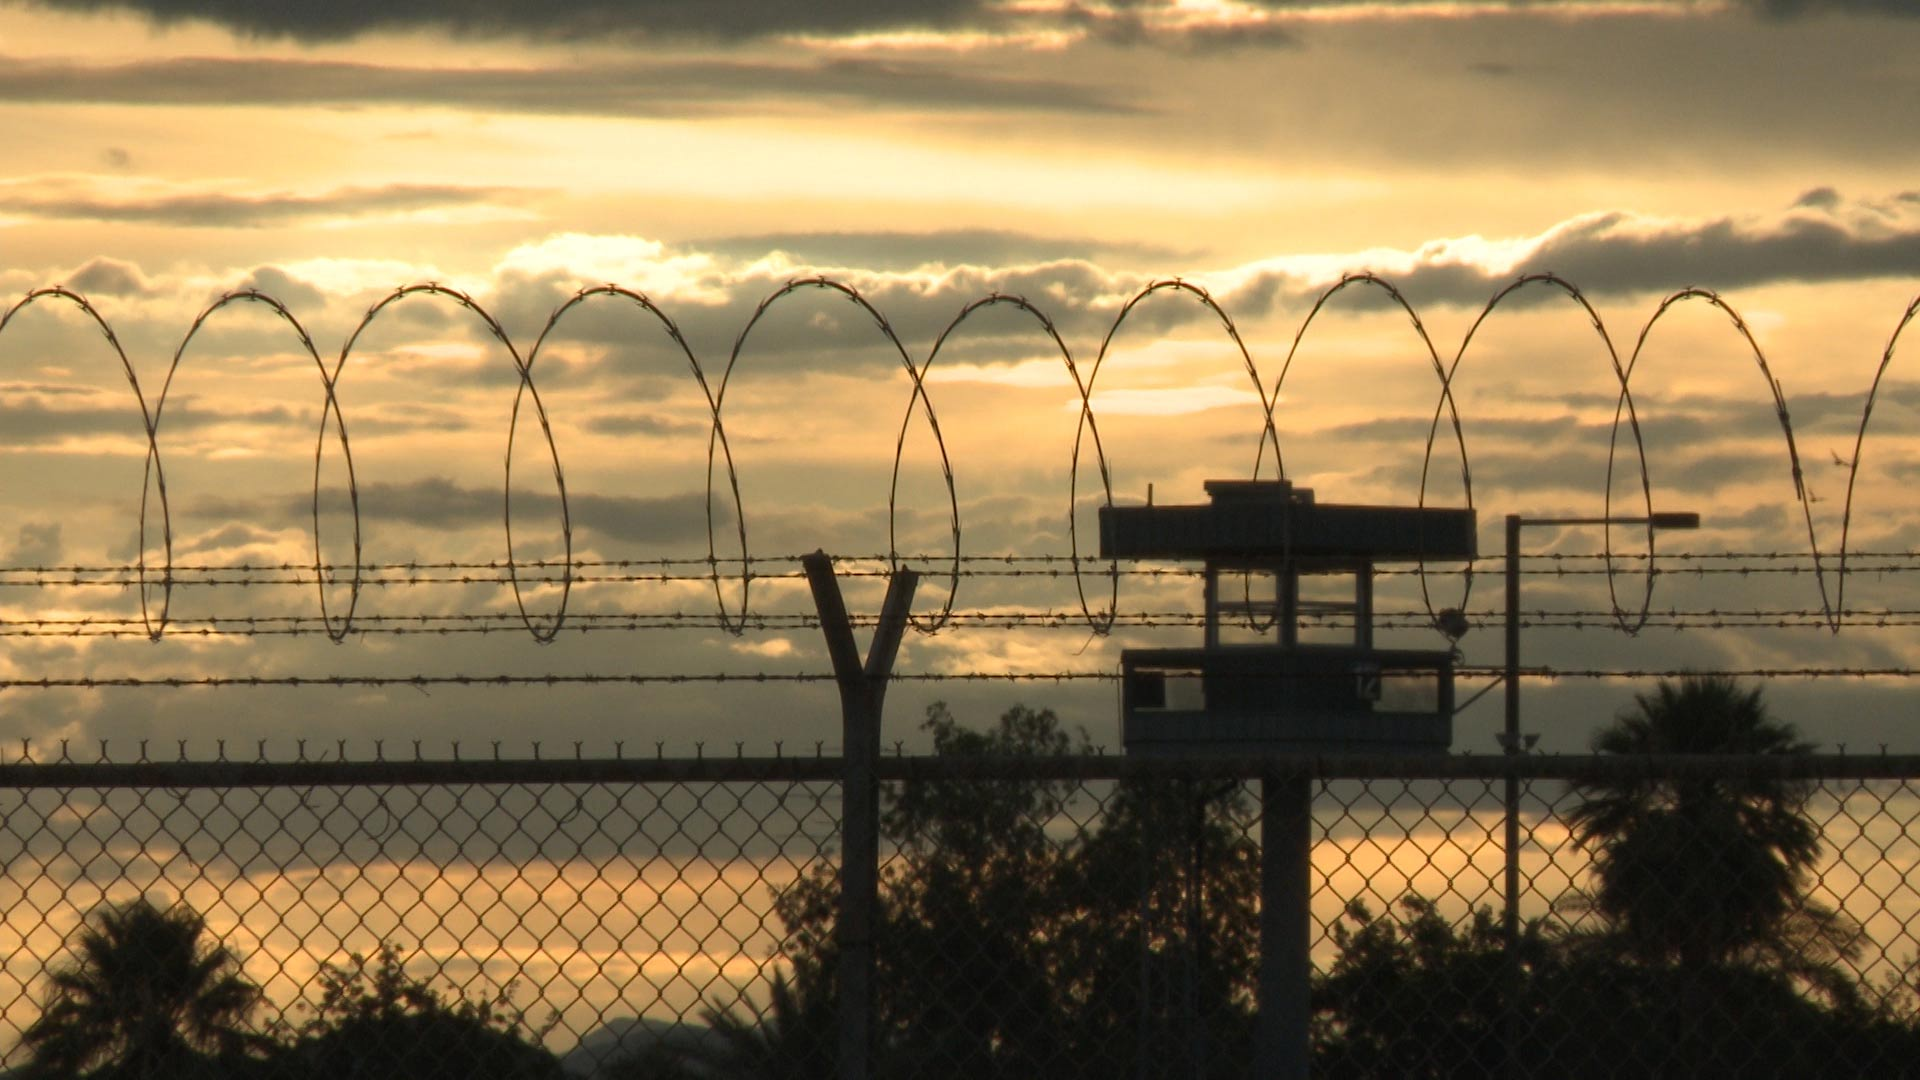 With nearly 42,000 incarcerated people, Arizona has one of the largest prison populations in the country.